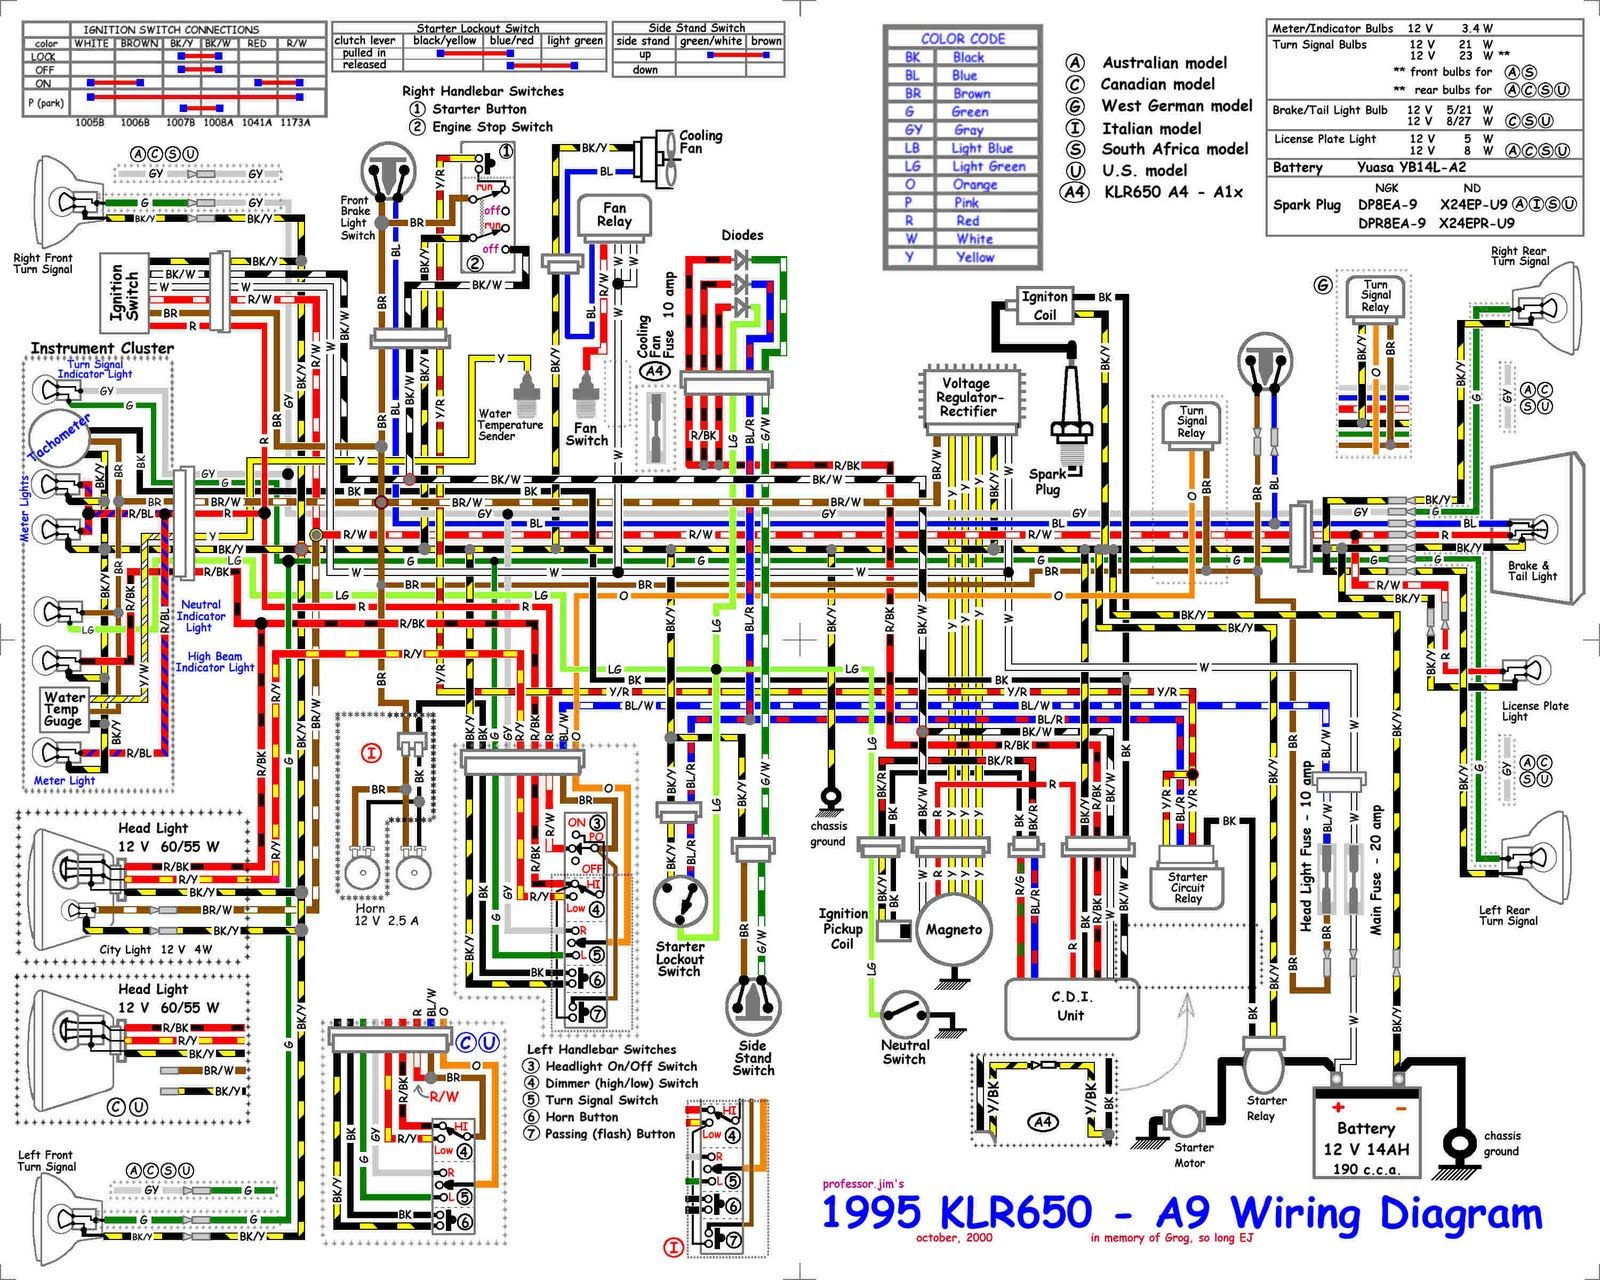 Wiring Diagram For Monte Carlo Opinions About 1971 Fuse Box Pin By Larry Hurt On Cool Cars Pinterest Klr 650 And Wire Rh Com 1986